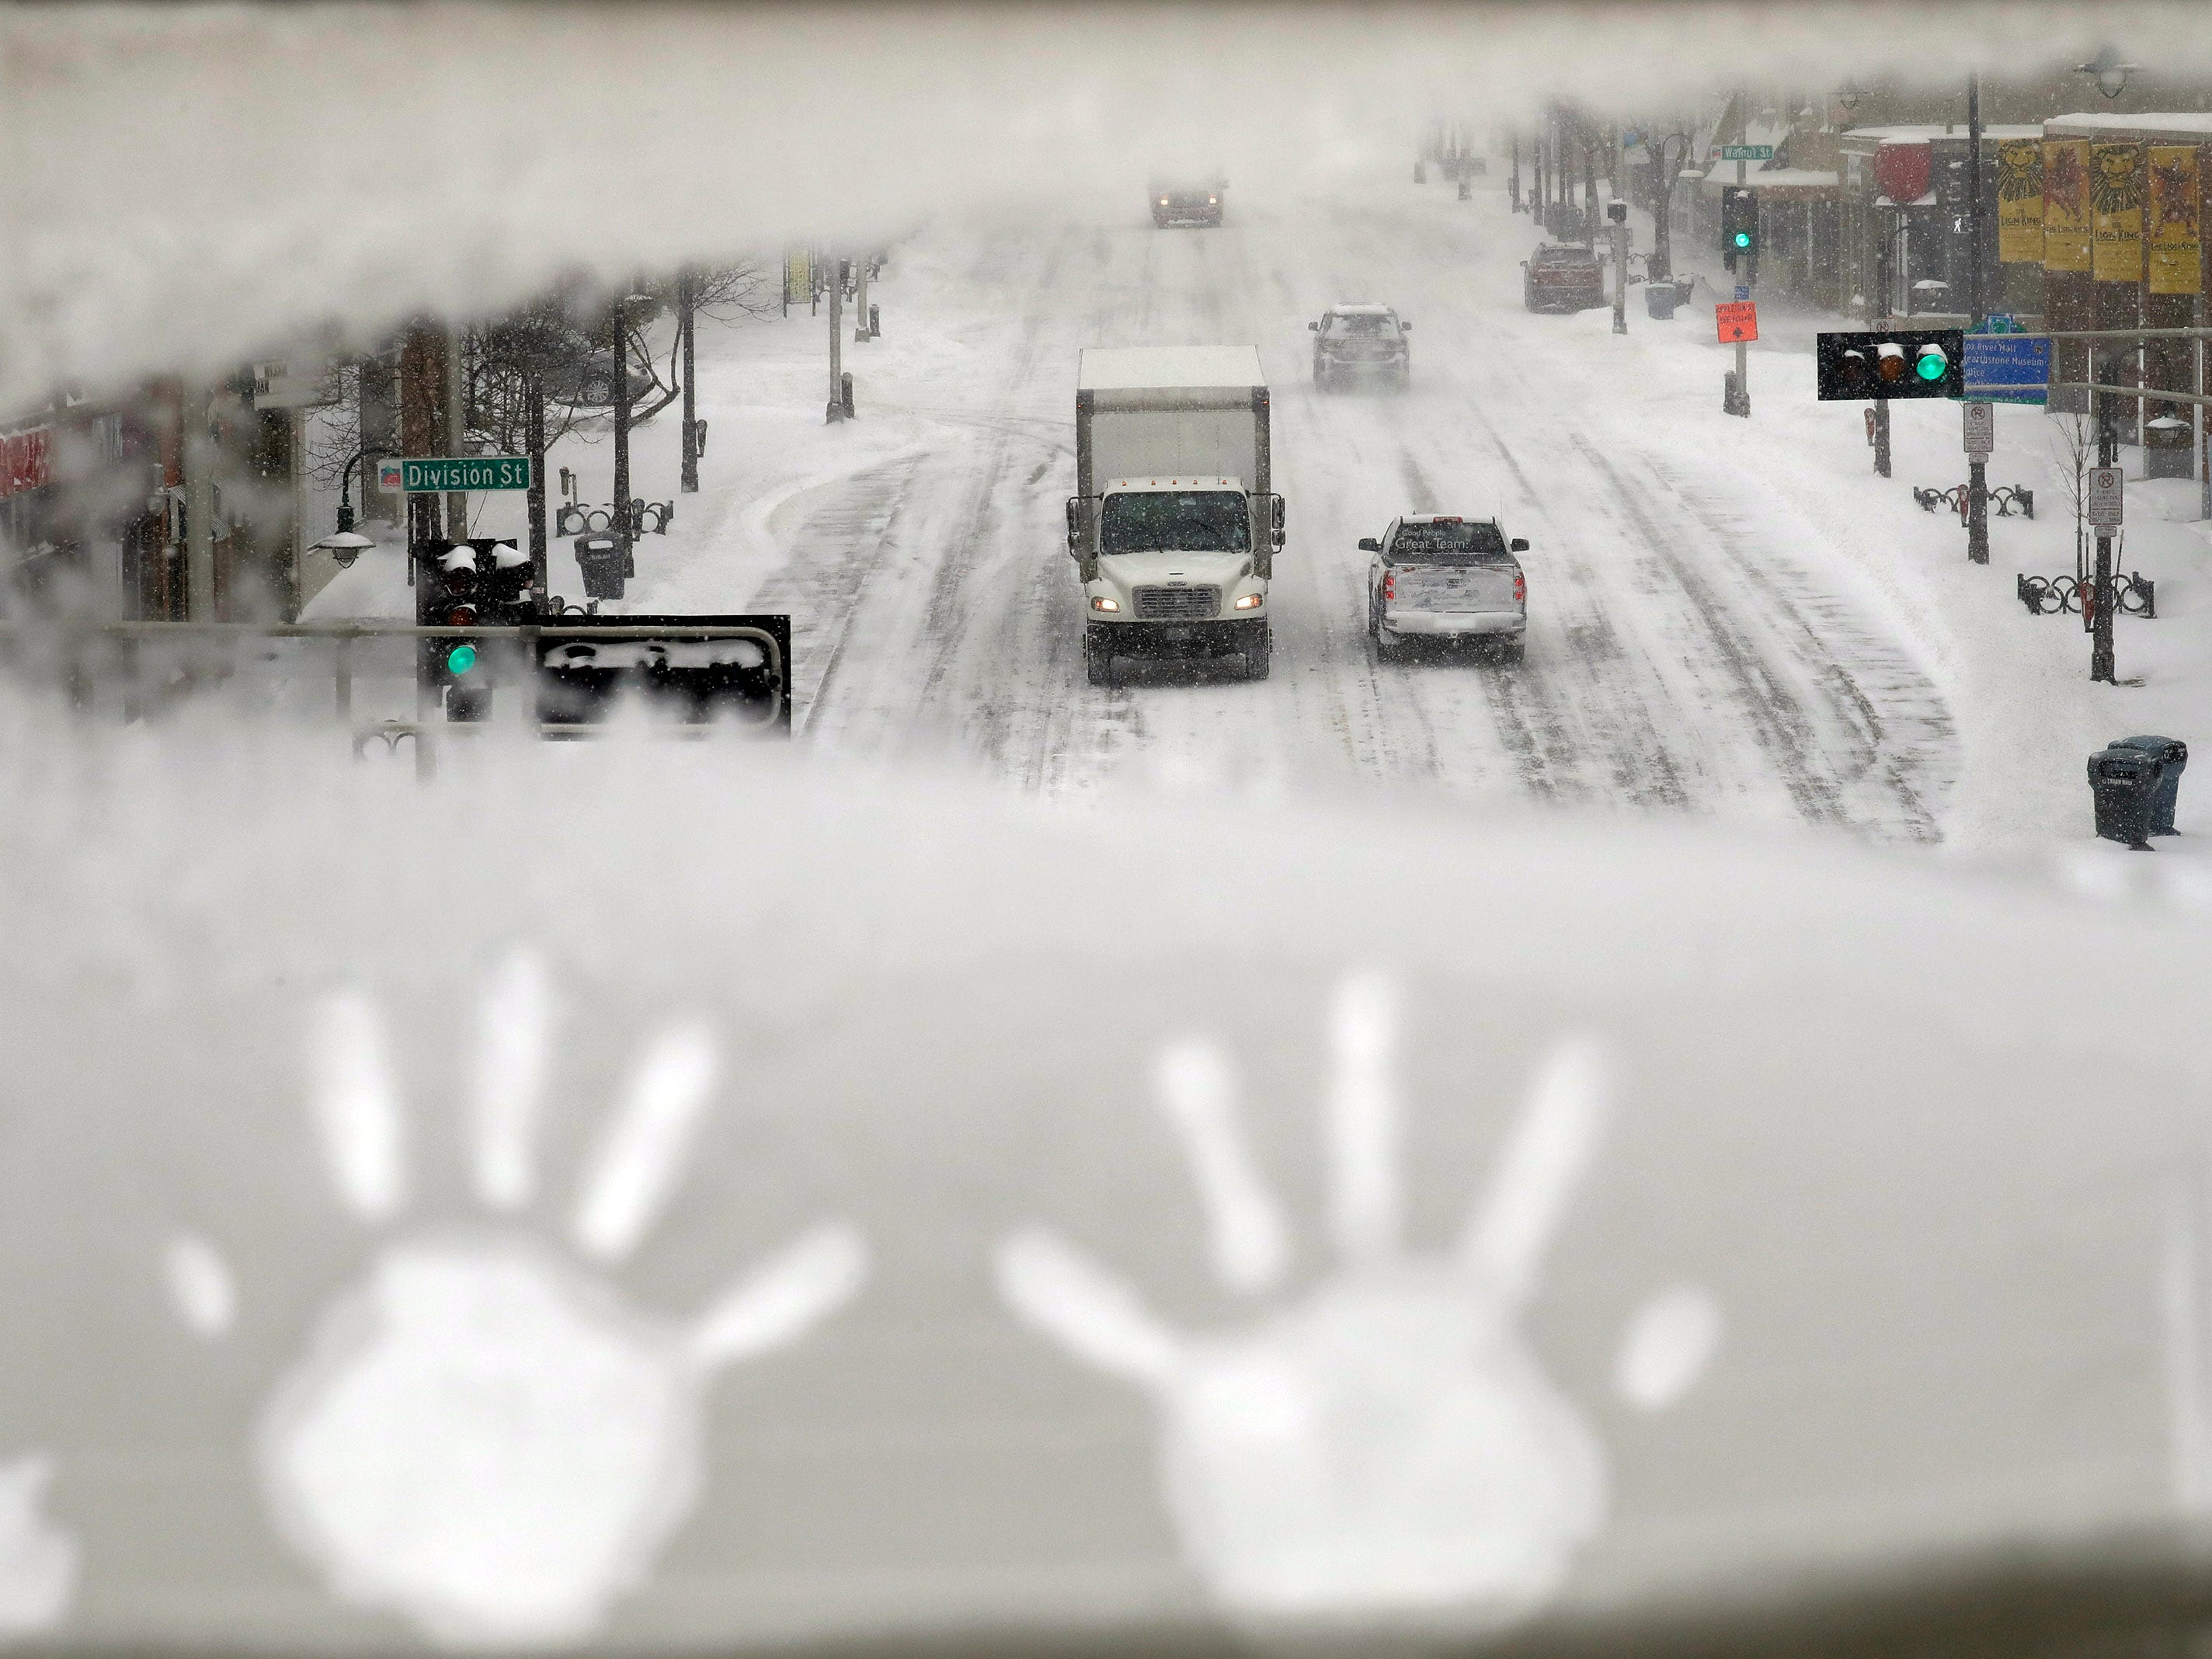 Hand prints are left behind on an overpass as traffic moves slowly along College Avenue during a snowstorm in downtown Appleton, Wis. Jan. 28, 2019.